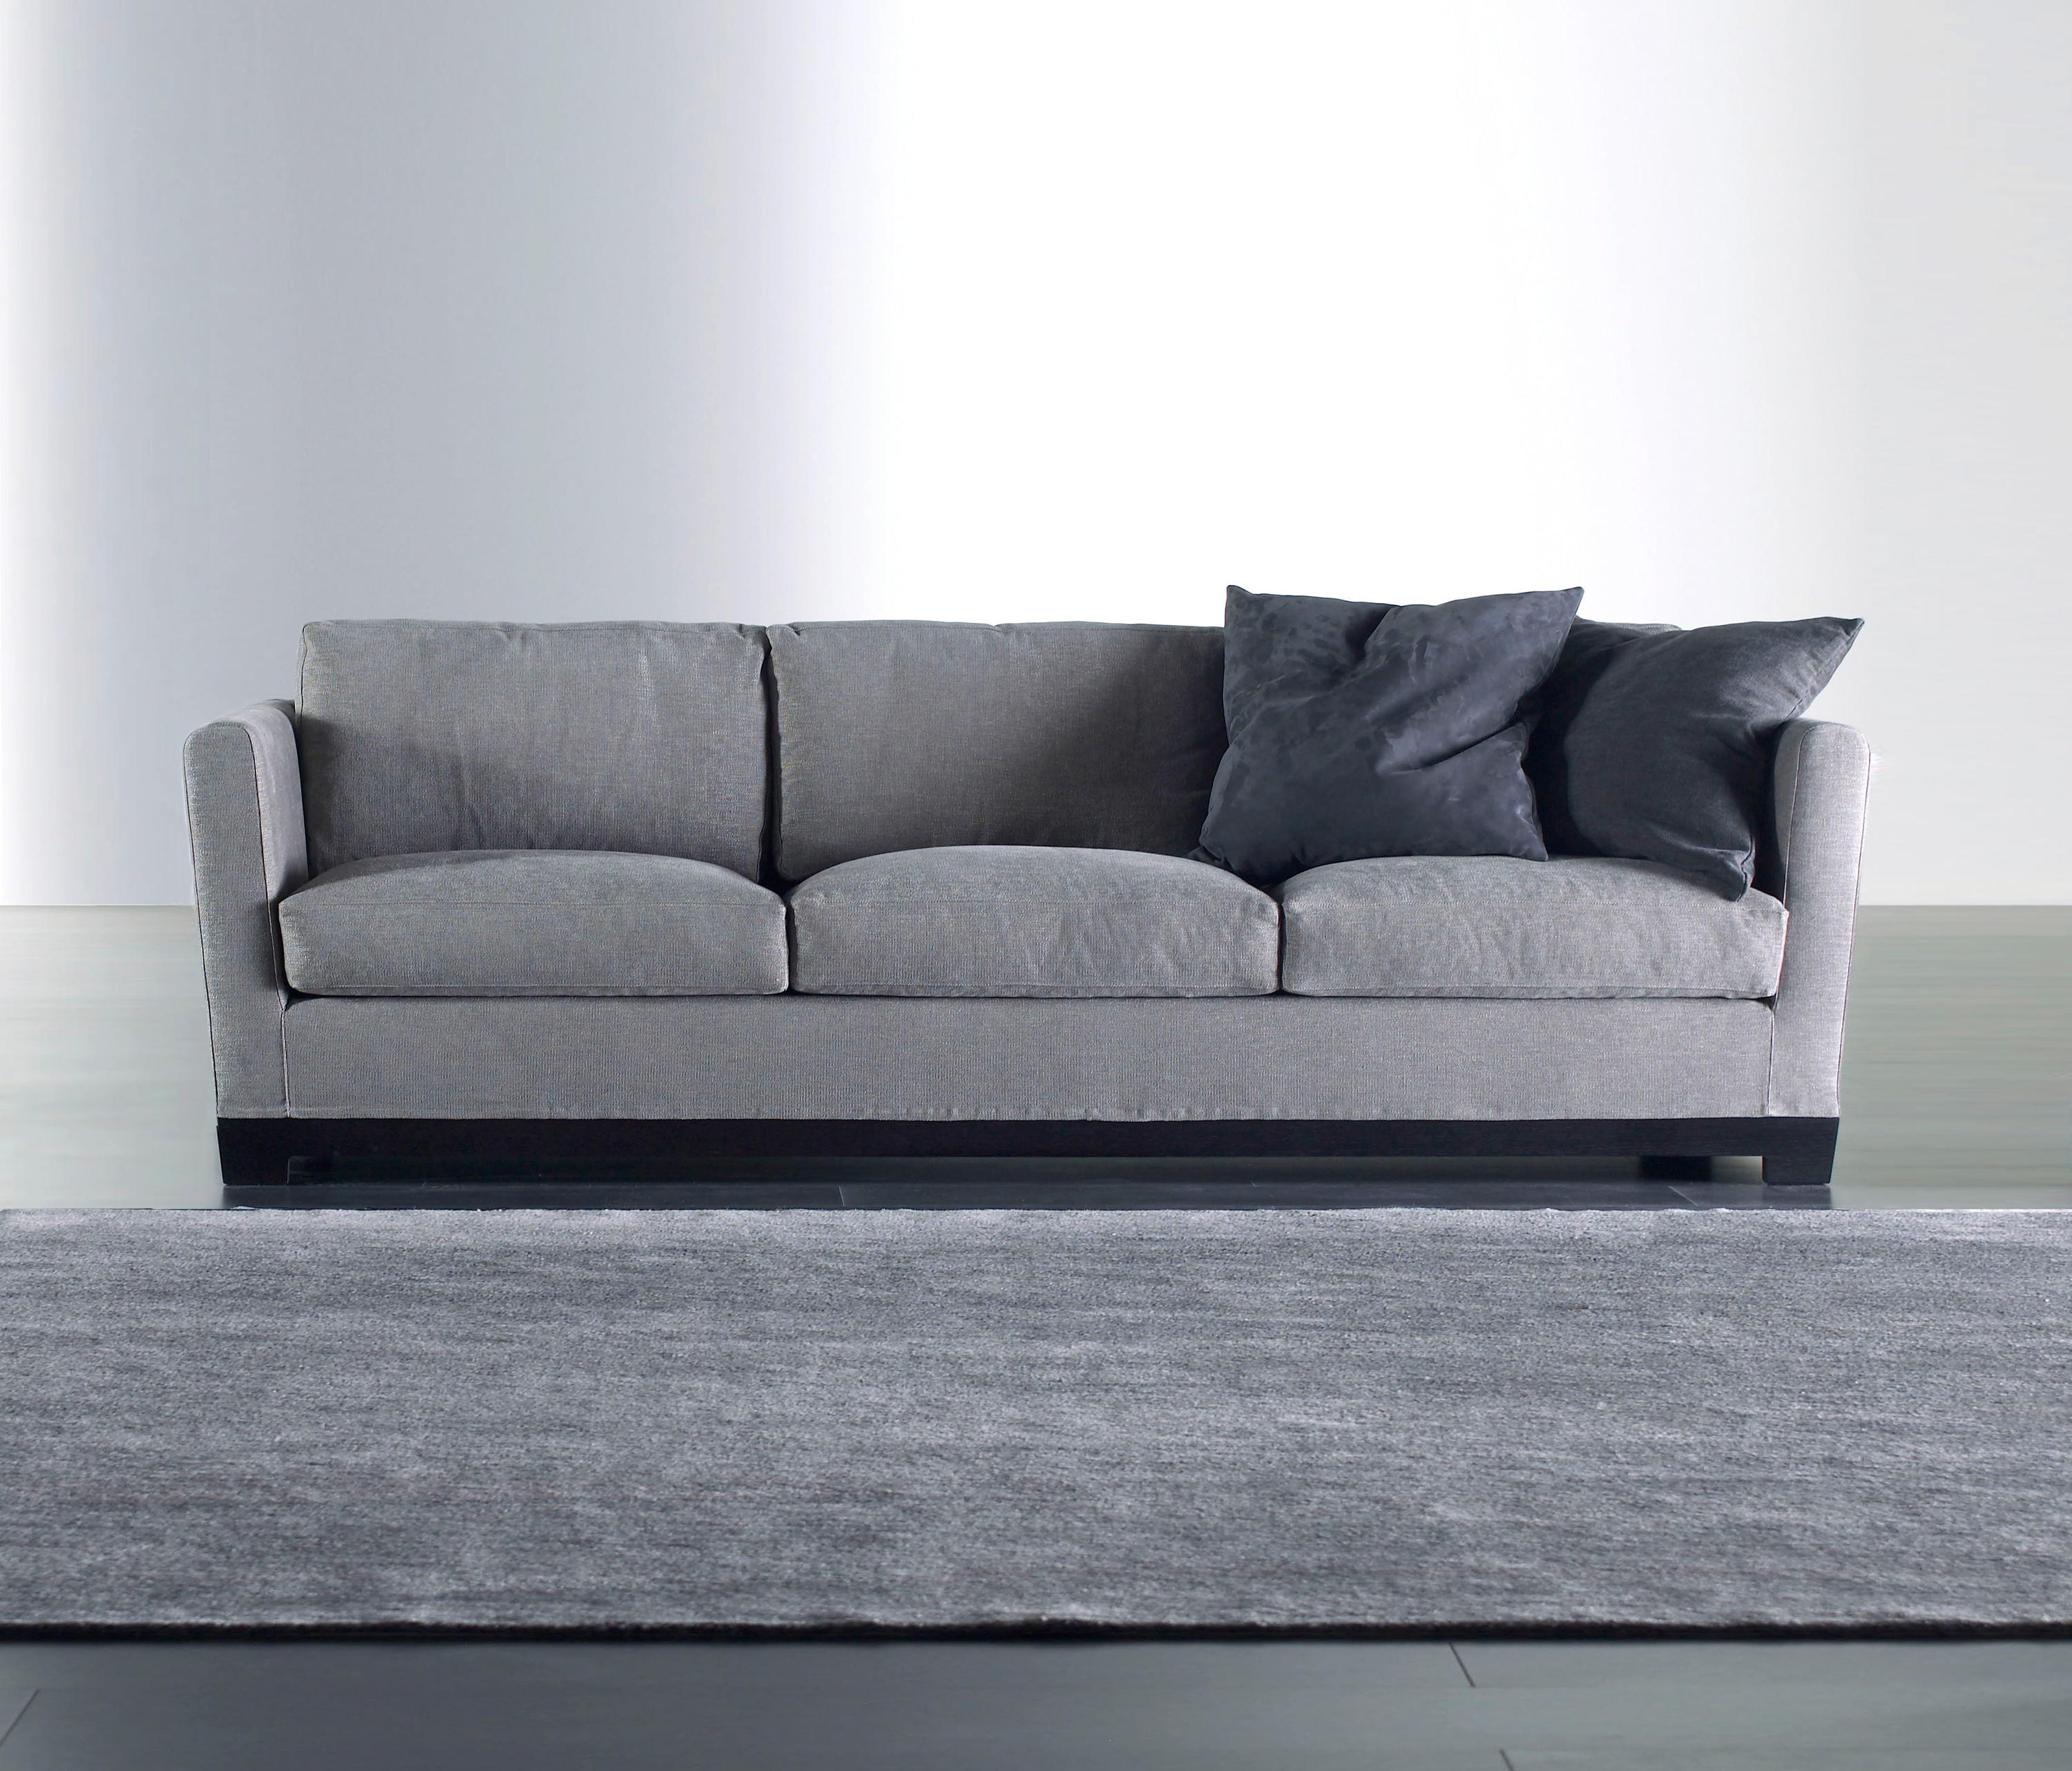 allen sofa 260 sofas from meridiani architonic. Black Bedroom Furniture Sets. Home Design Ideas